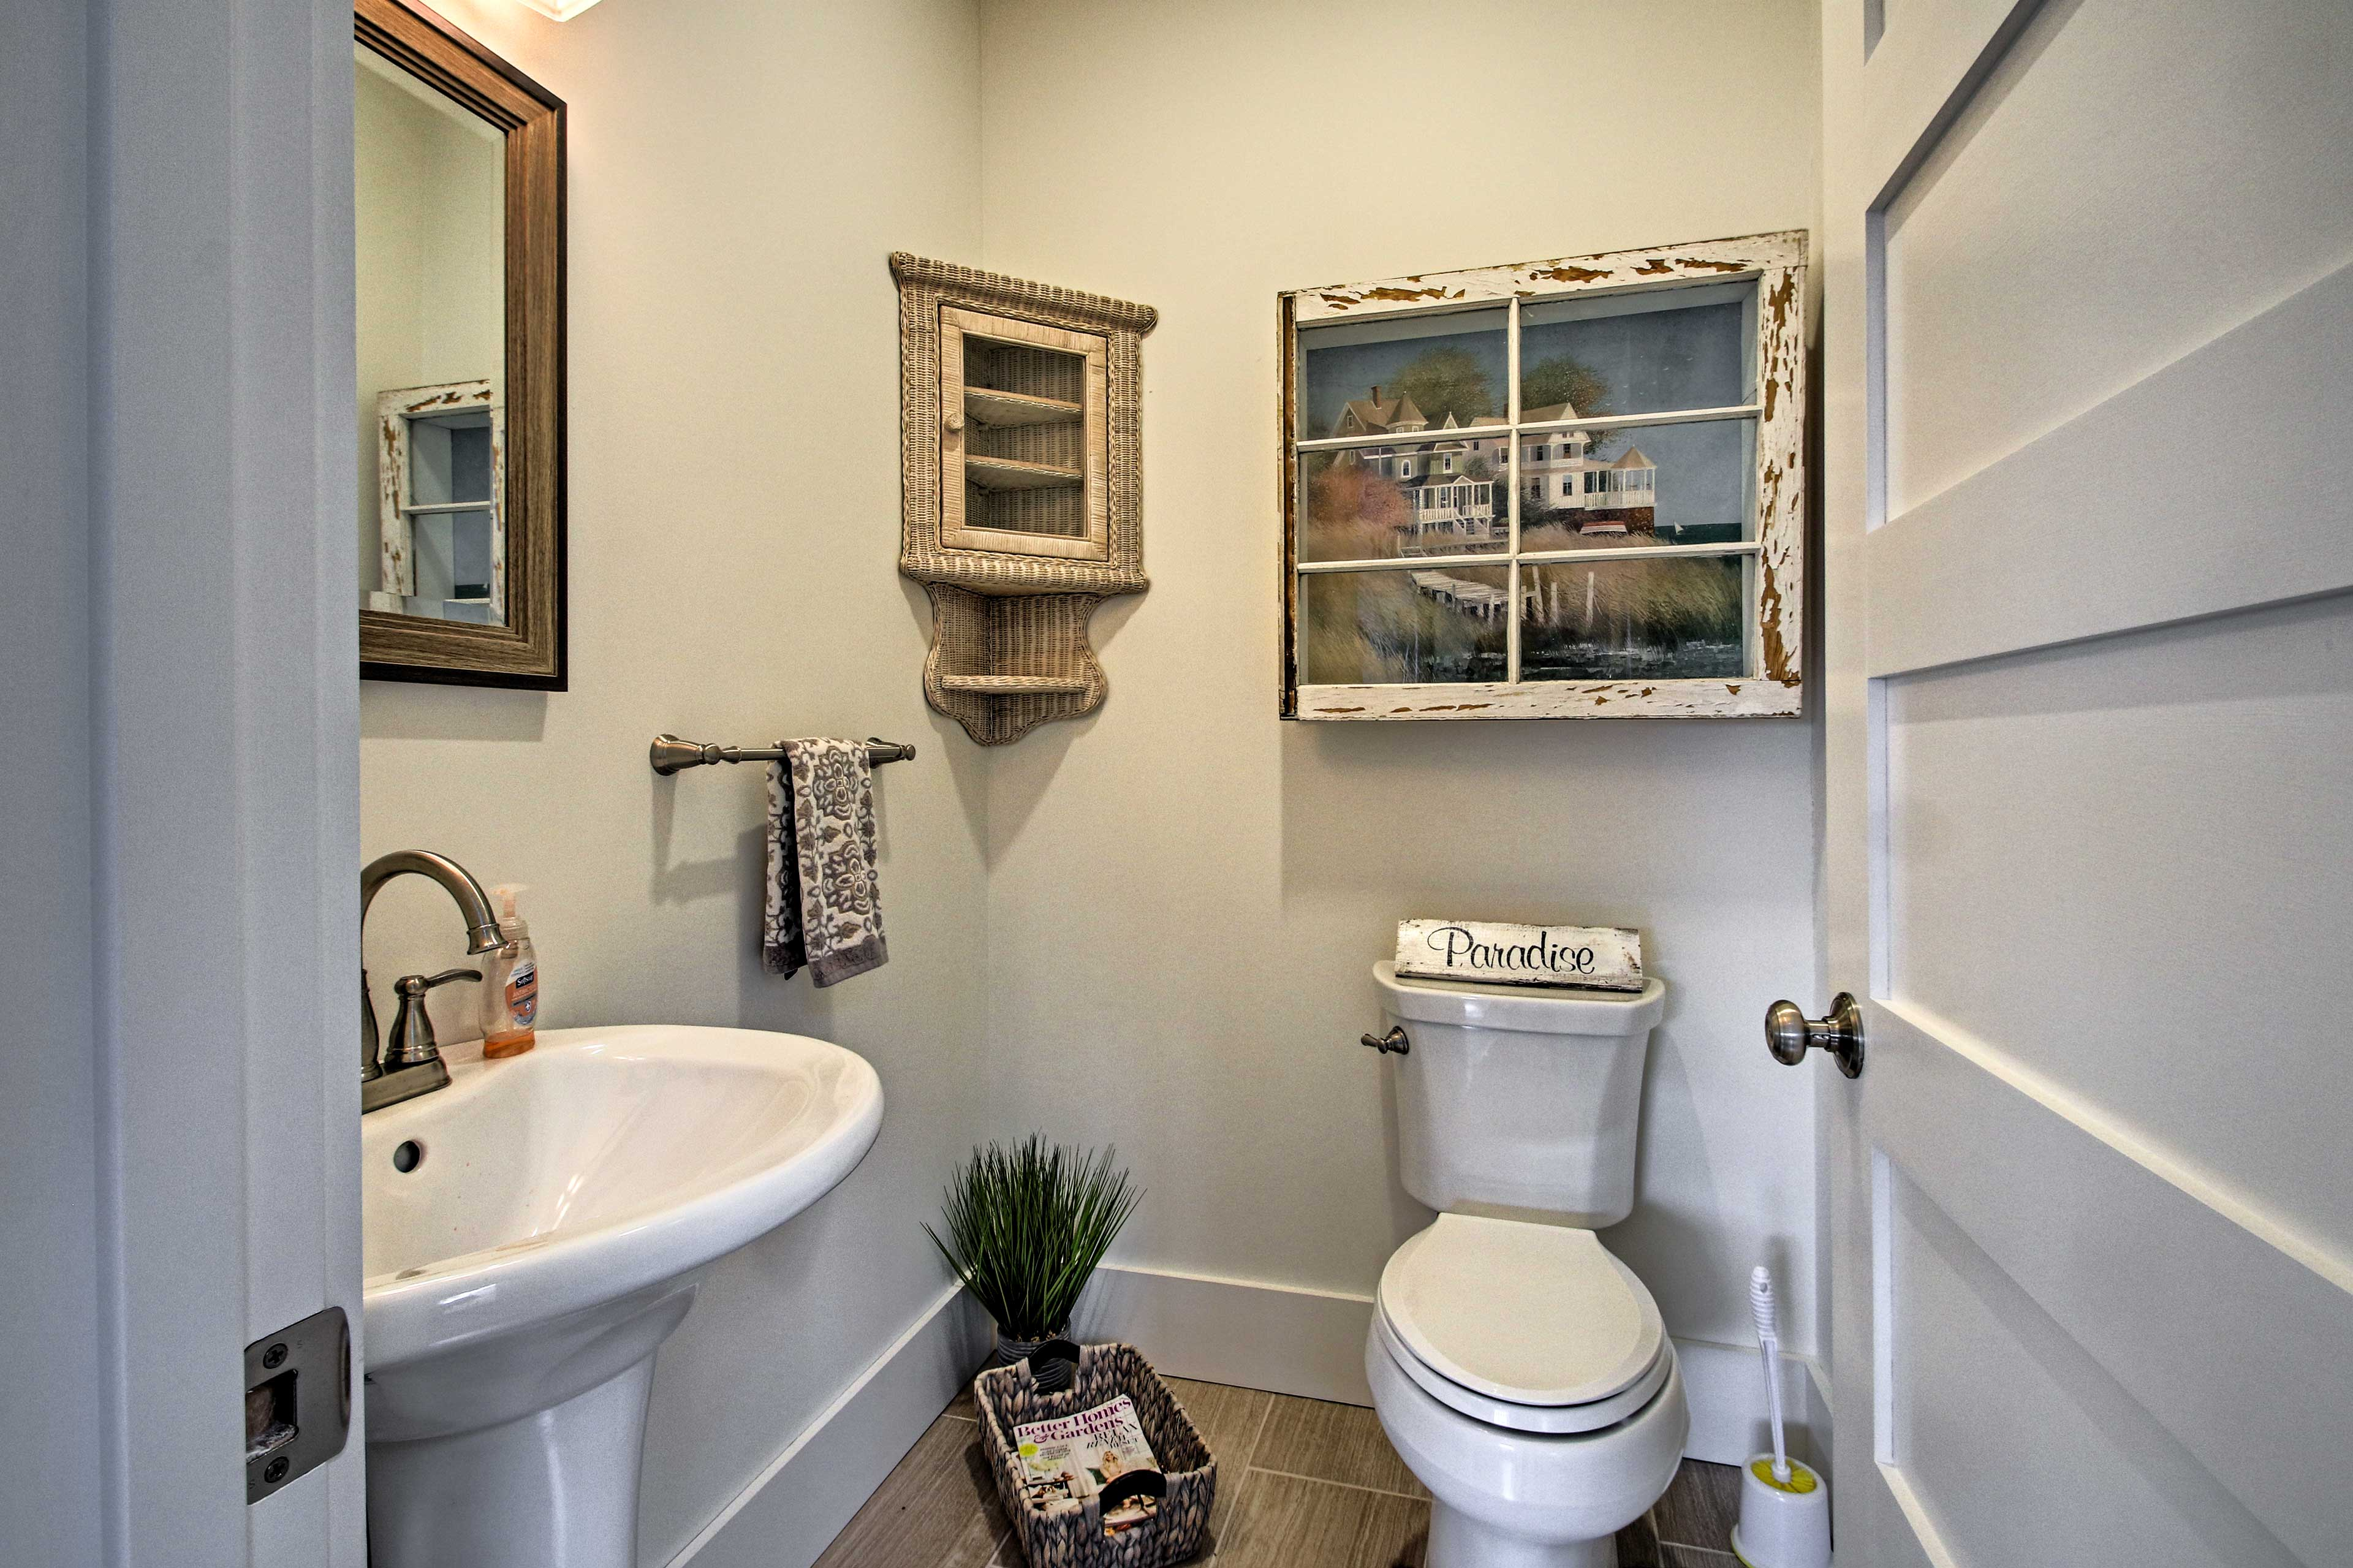 The half bathroom is located adjacent to the kitchen.